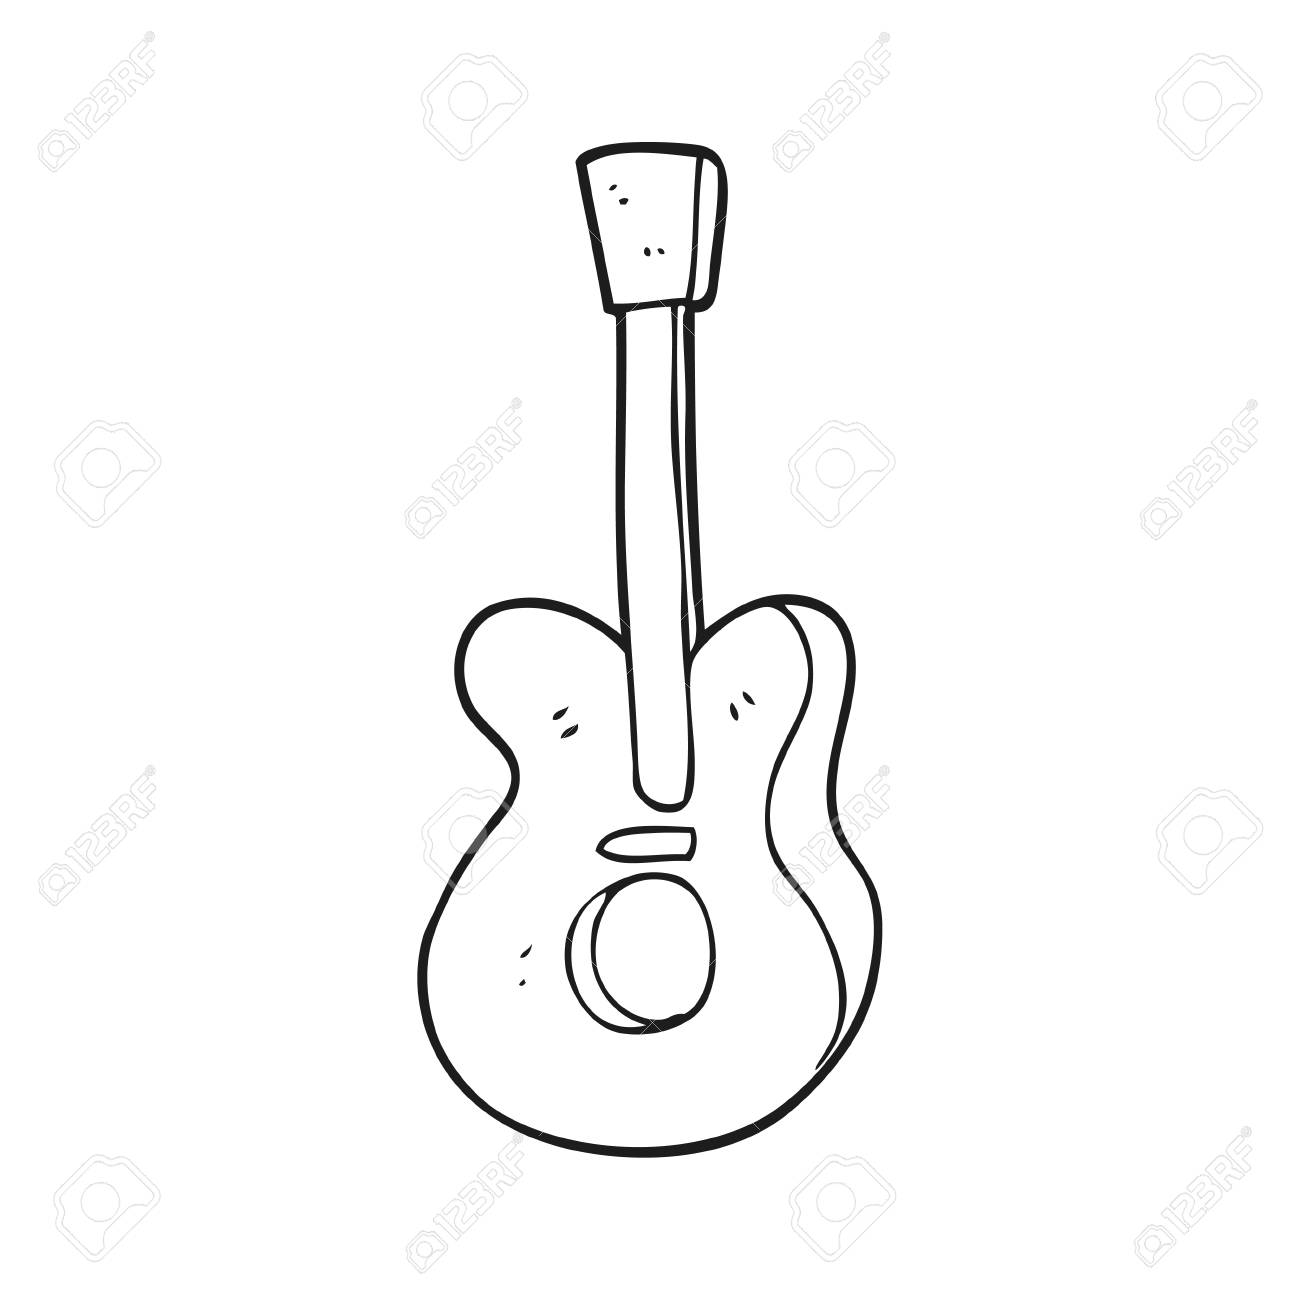 Freehand Drawn Black And White Cartoon Guitar Royalty Free Cliparts Vectors And Stock Illustration Image 53288980